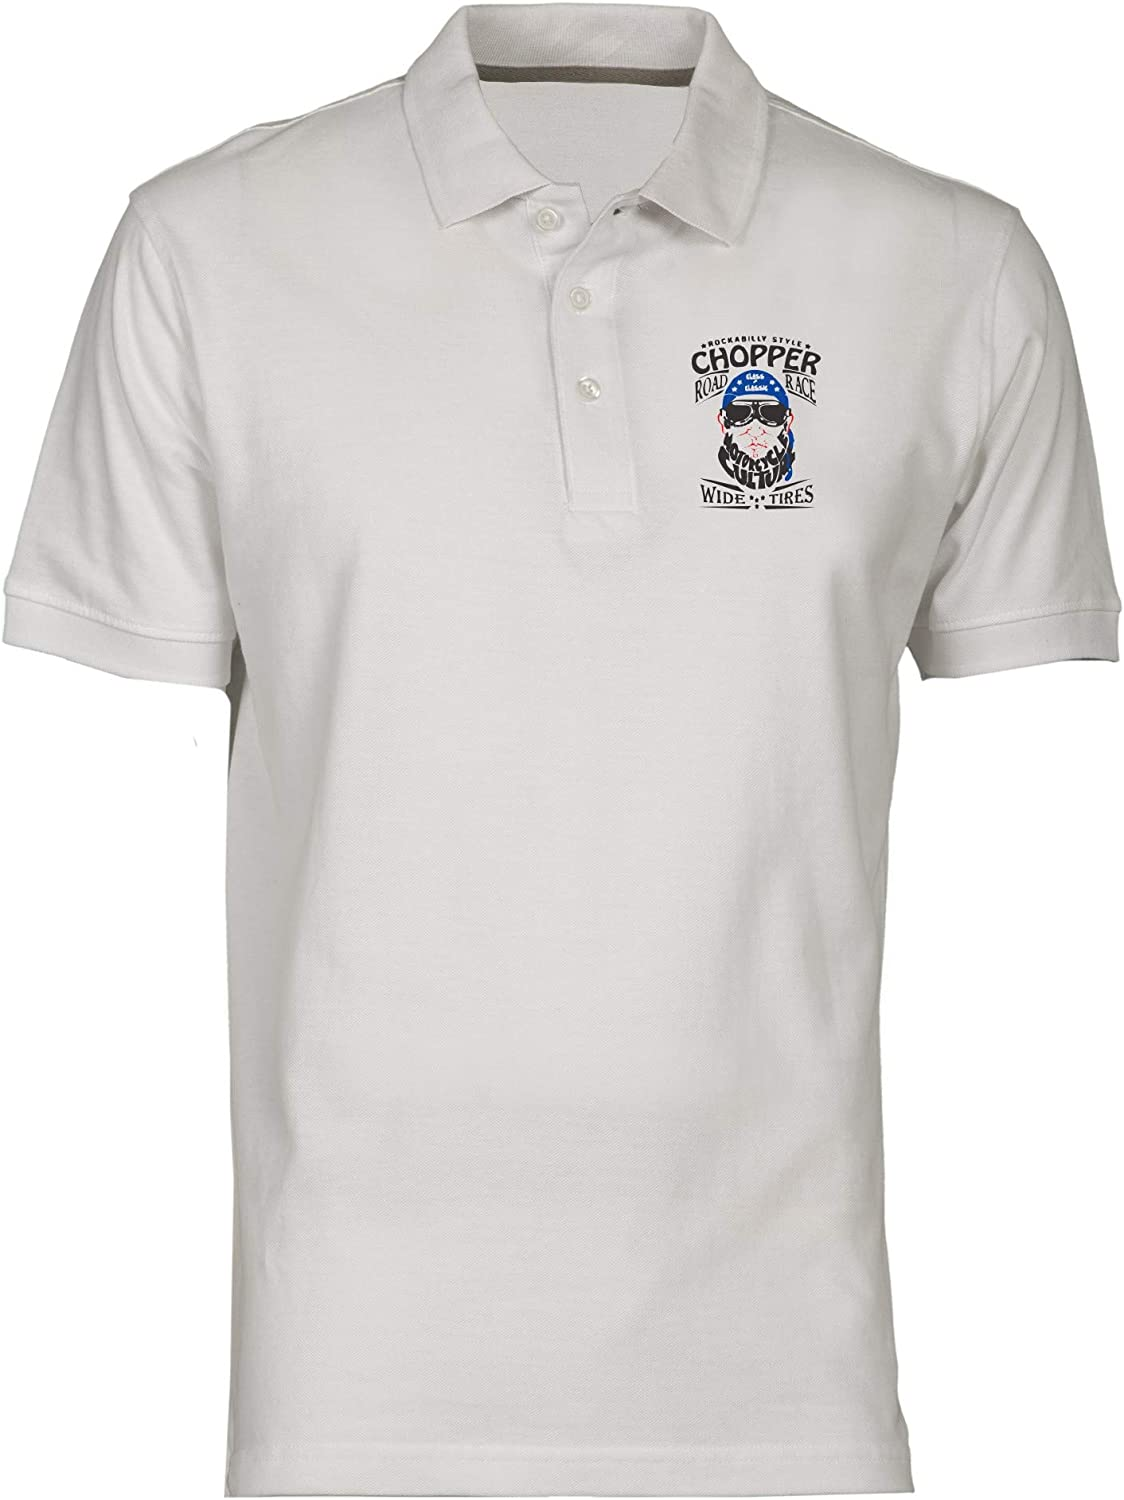 Polo por Hombre Blanco TB0492 Vintage Race Car and Motorcycle Old ...